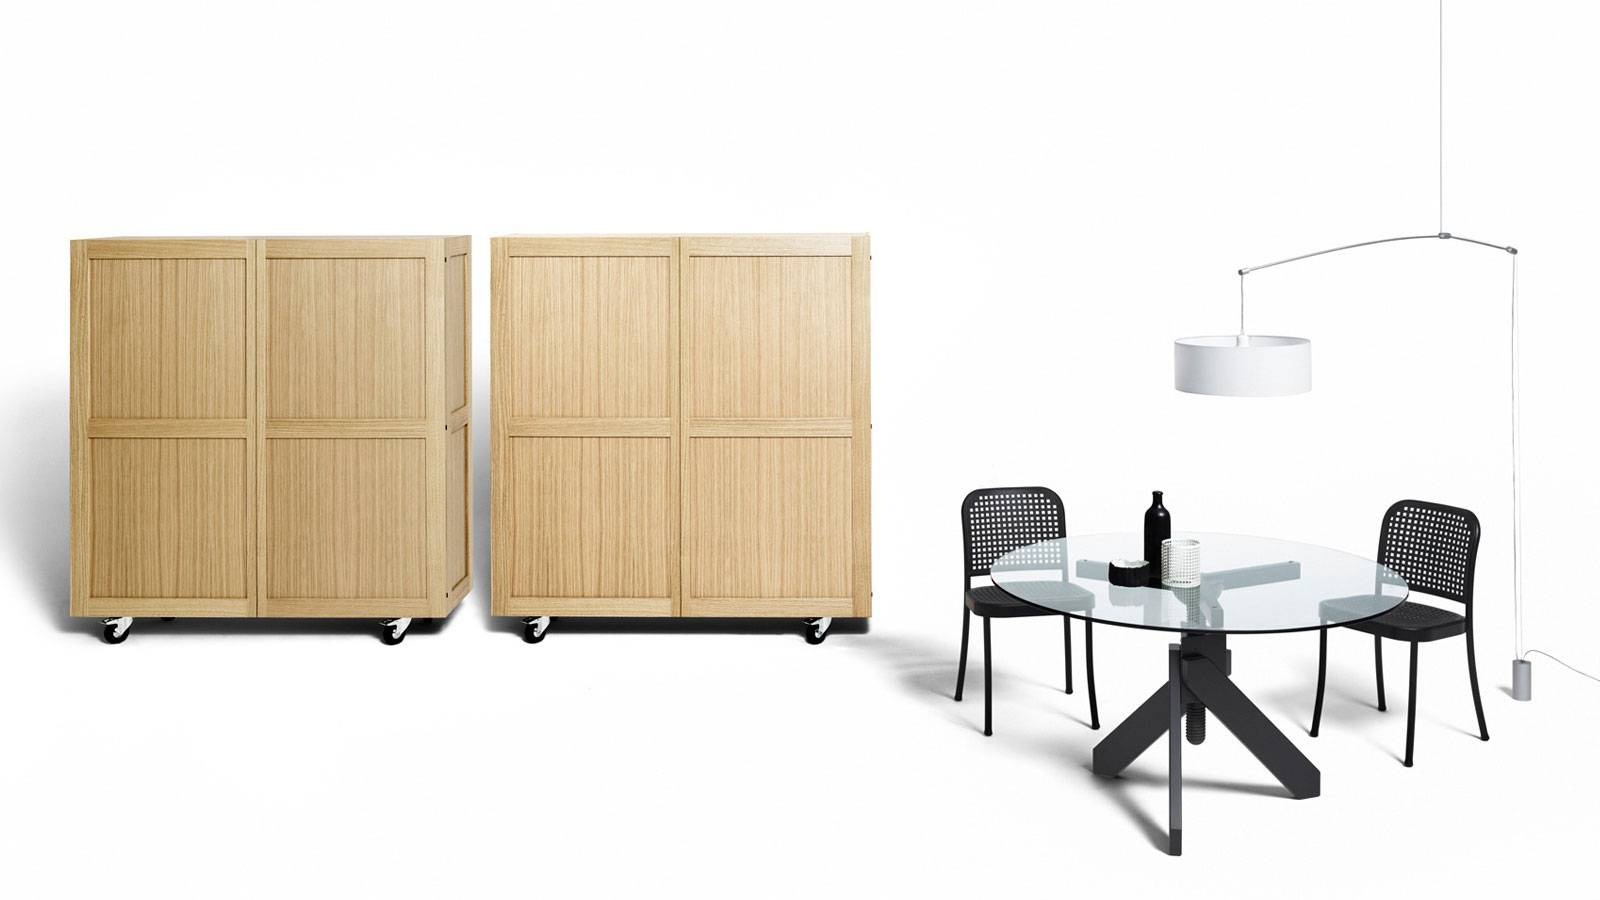 contemporary design furniture by Vico Magistretti for De Padova